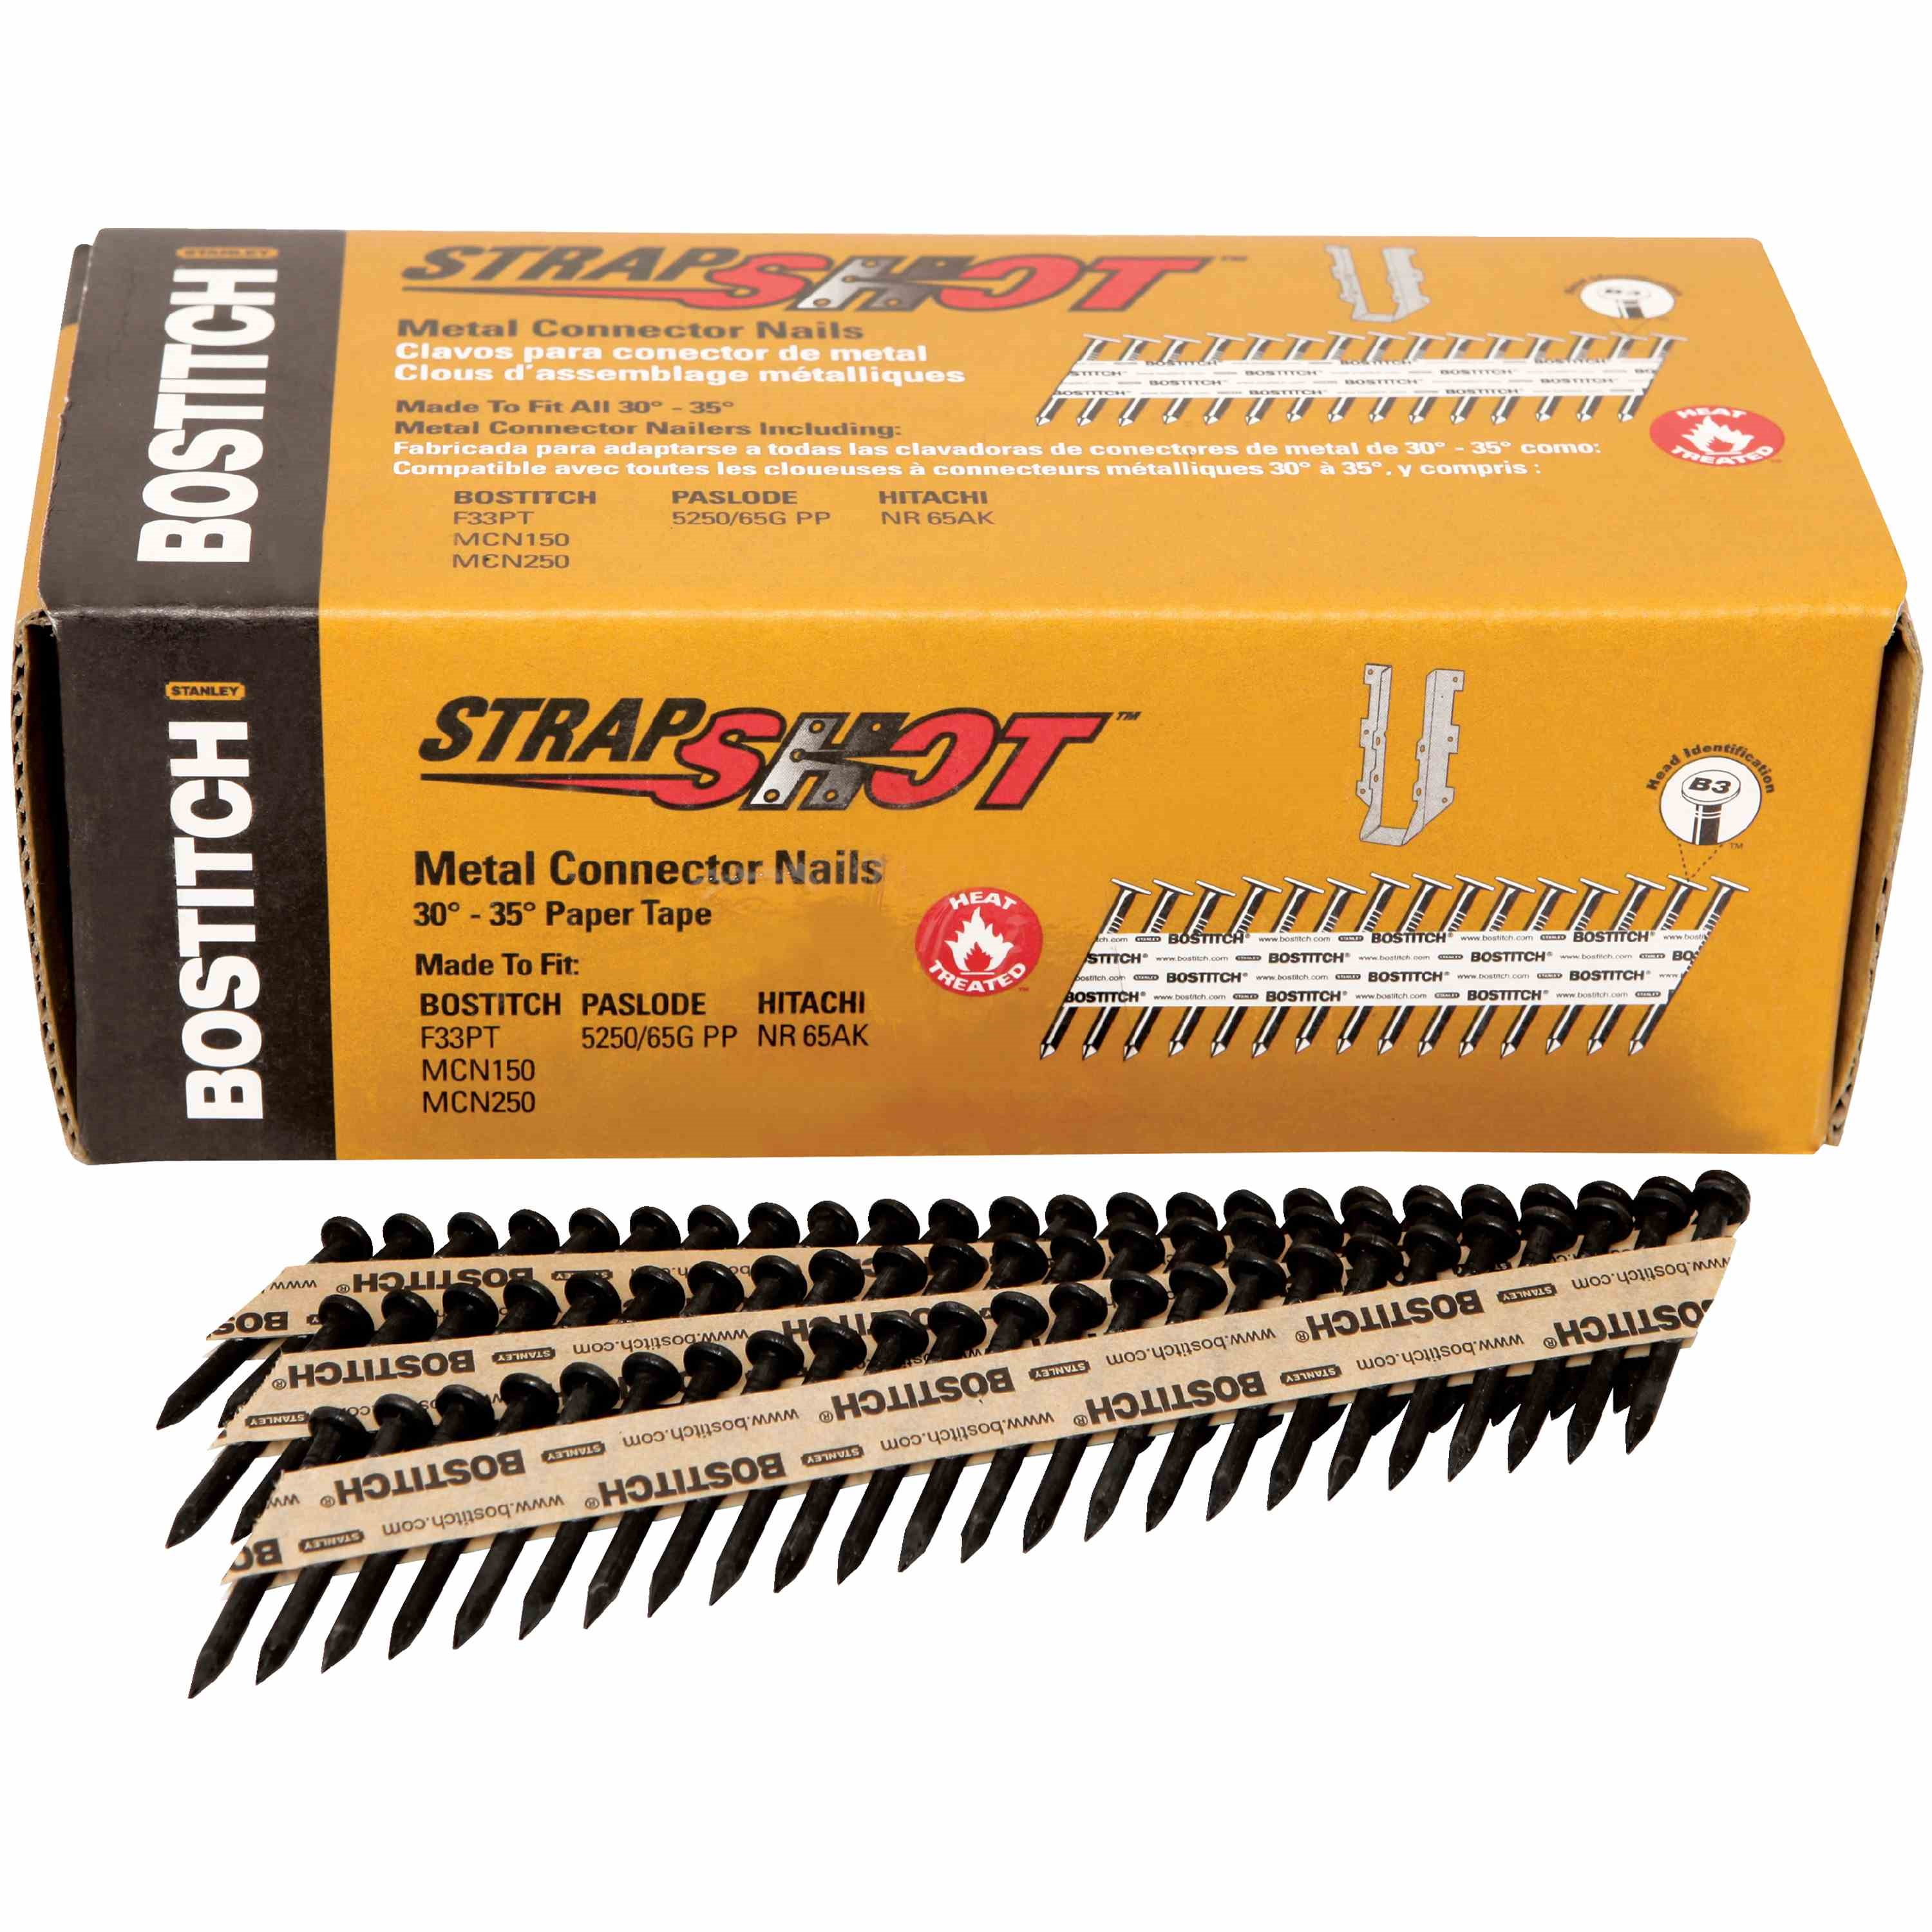 Bostitch - 1000Qty 112 x 131 35 STRAPSHOT Paper Collated Metal Connector Nails - PT-MC13115-1M